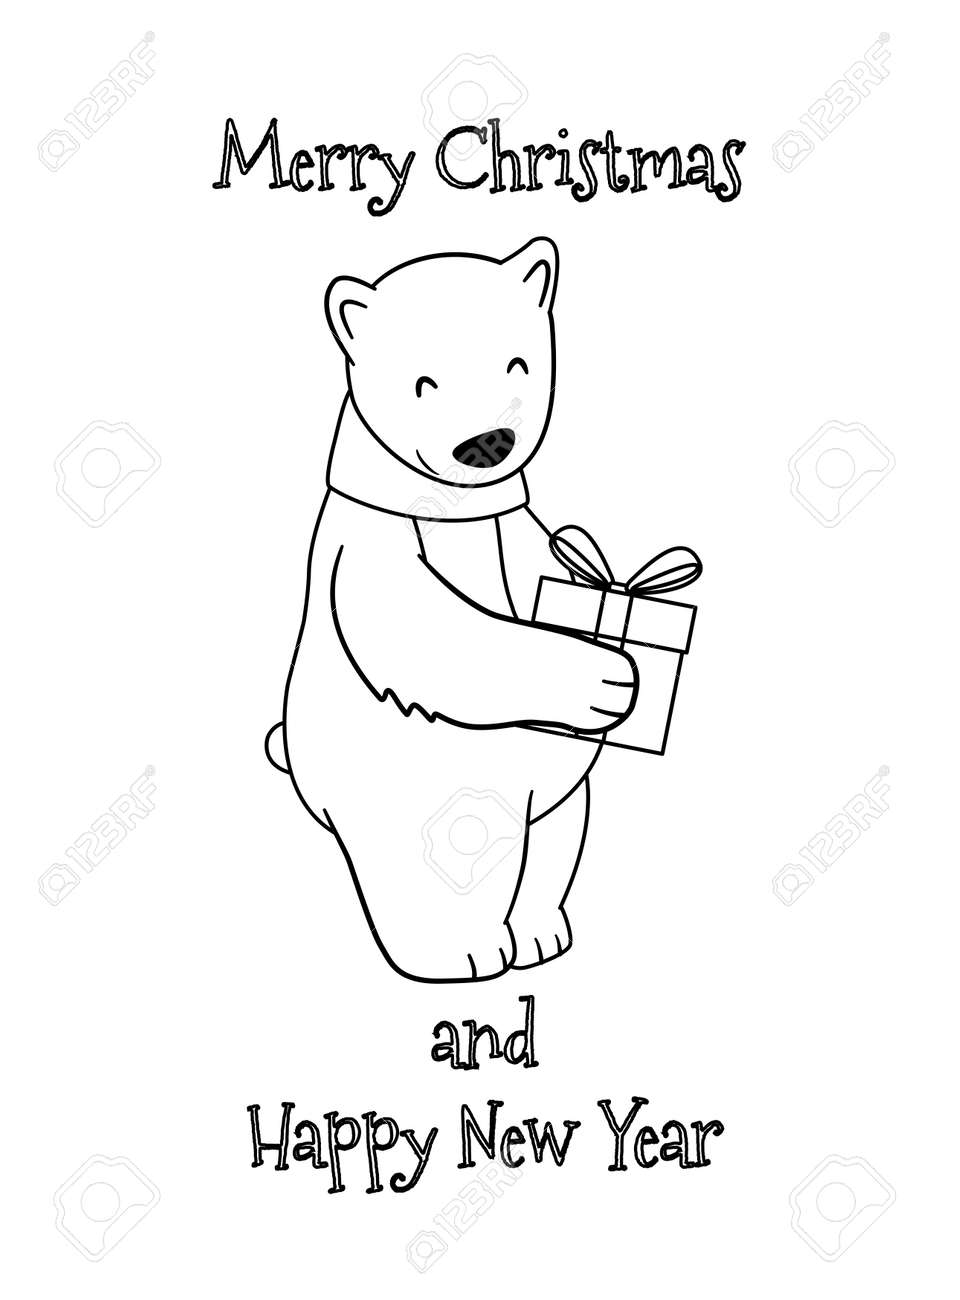 Cute Cartoon Christmas Polar Bear With Gift Coloring Page For